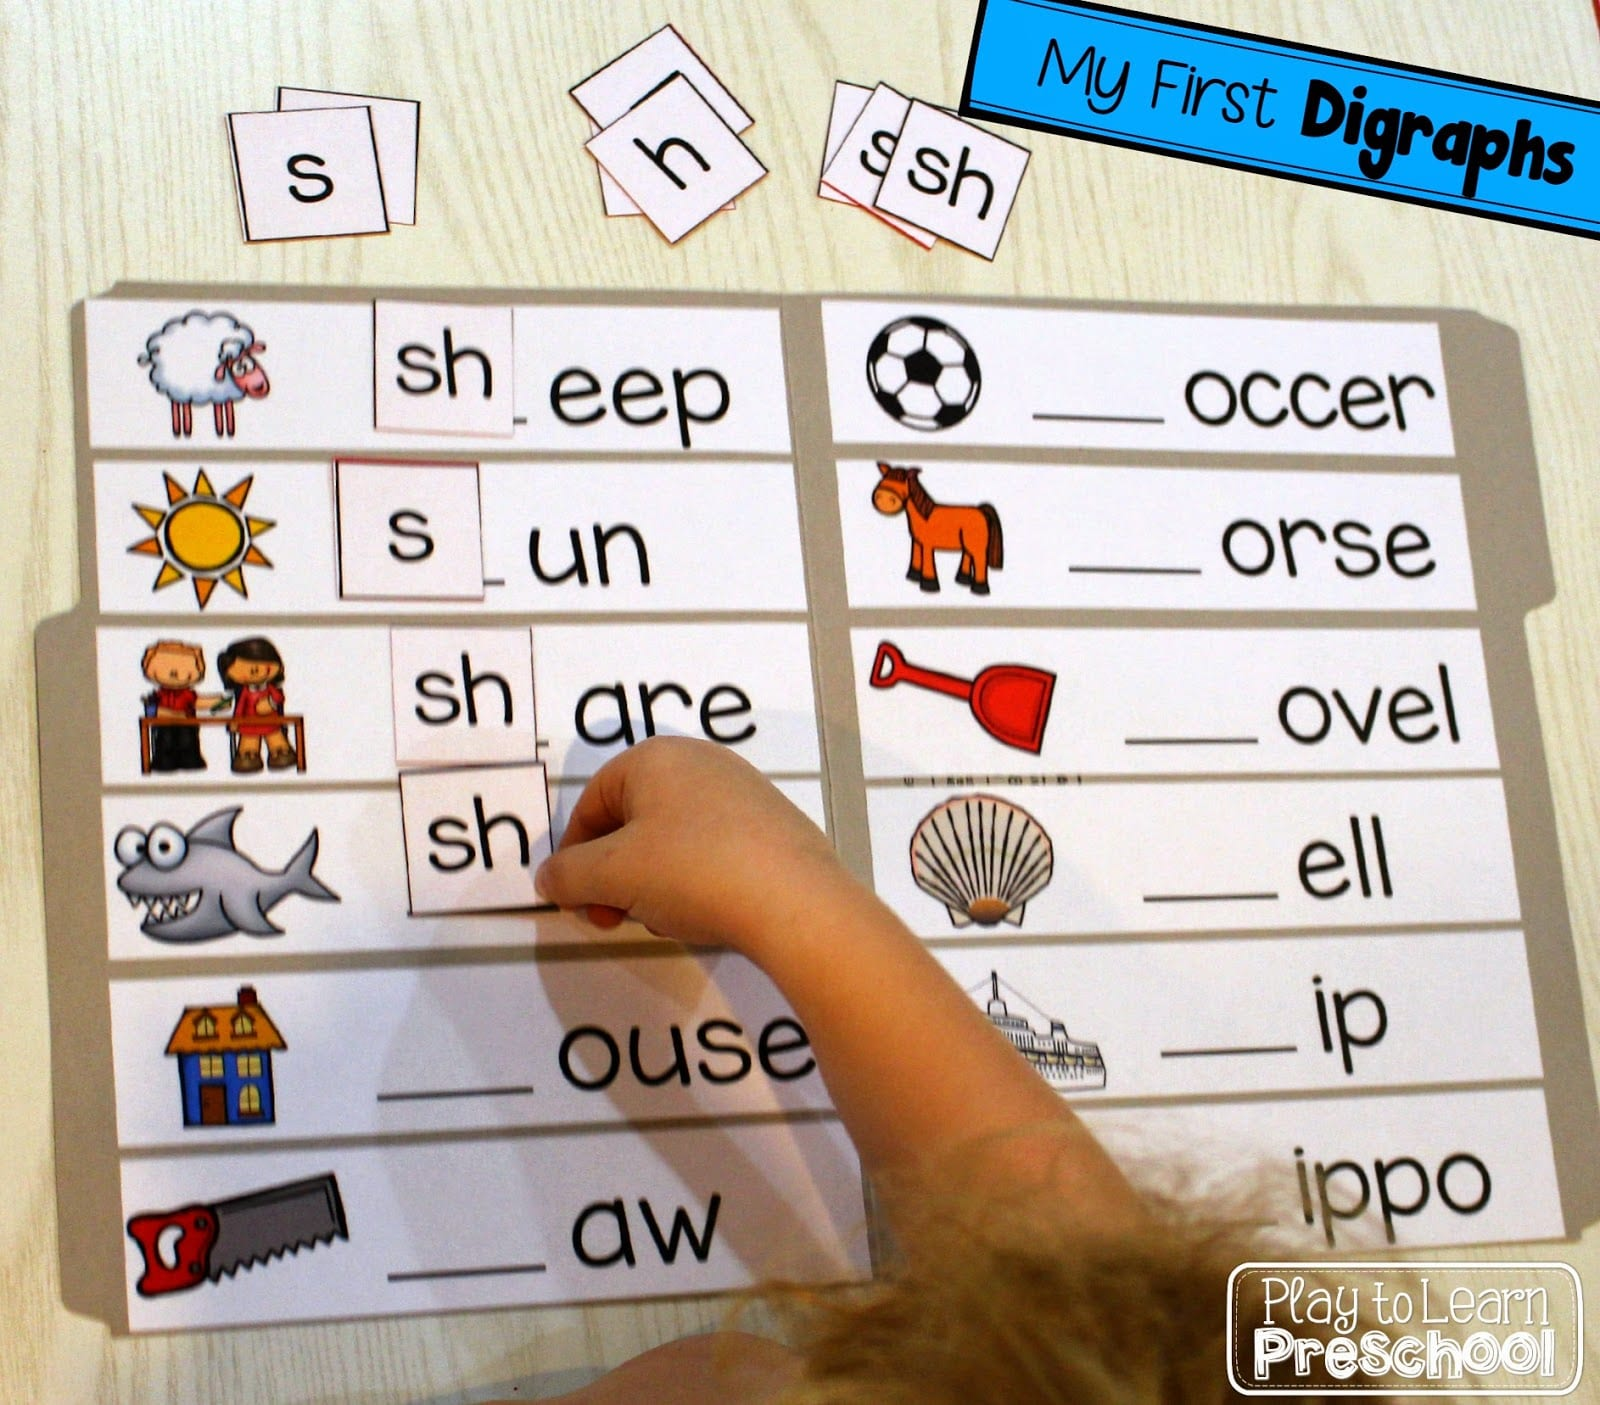 hight resolution of My First Digraphs - Play to Learn